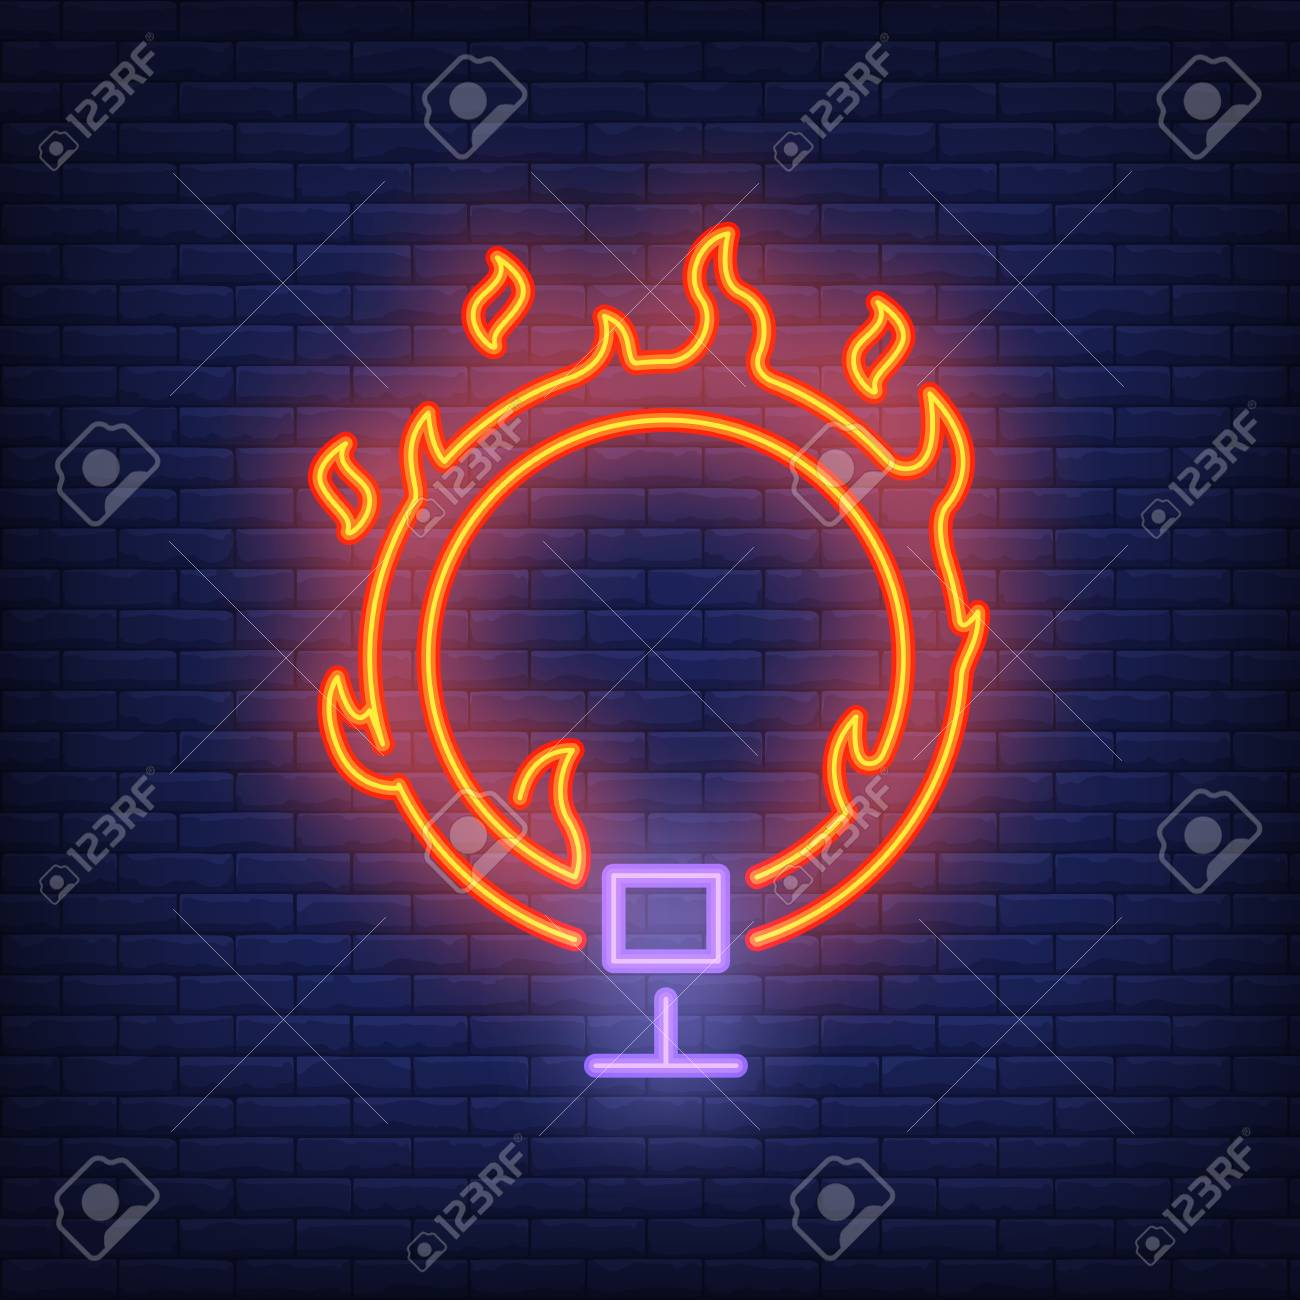 ring on fire neon icon circus flaming hoop on dark brick wall